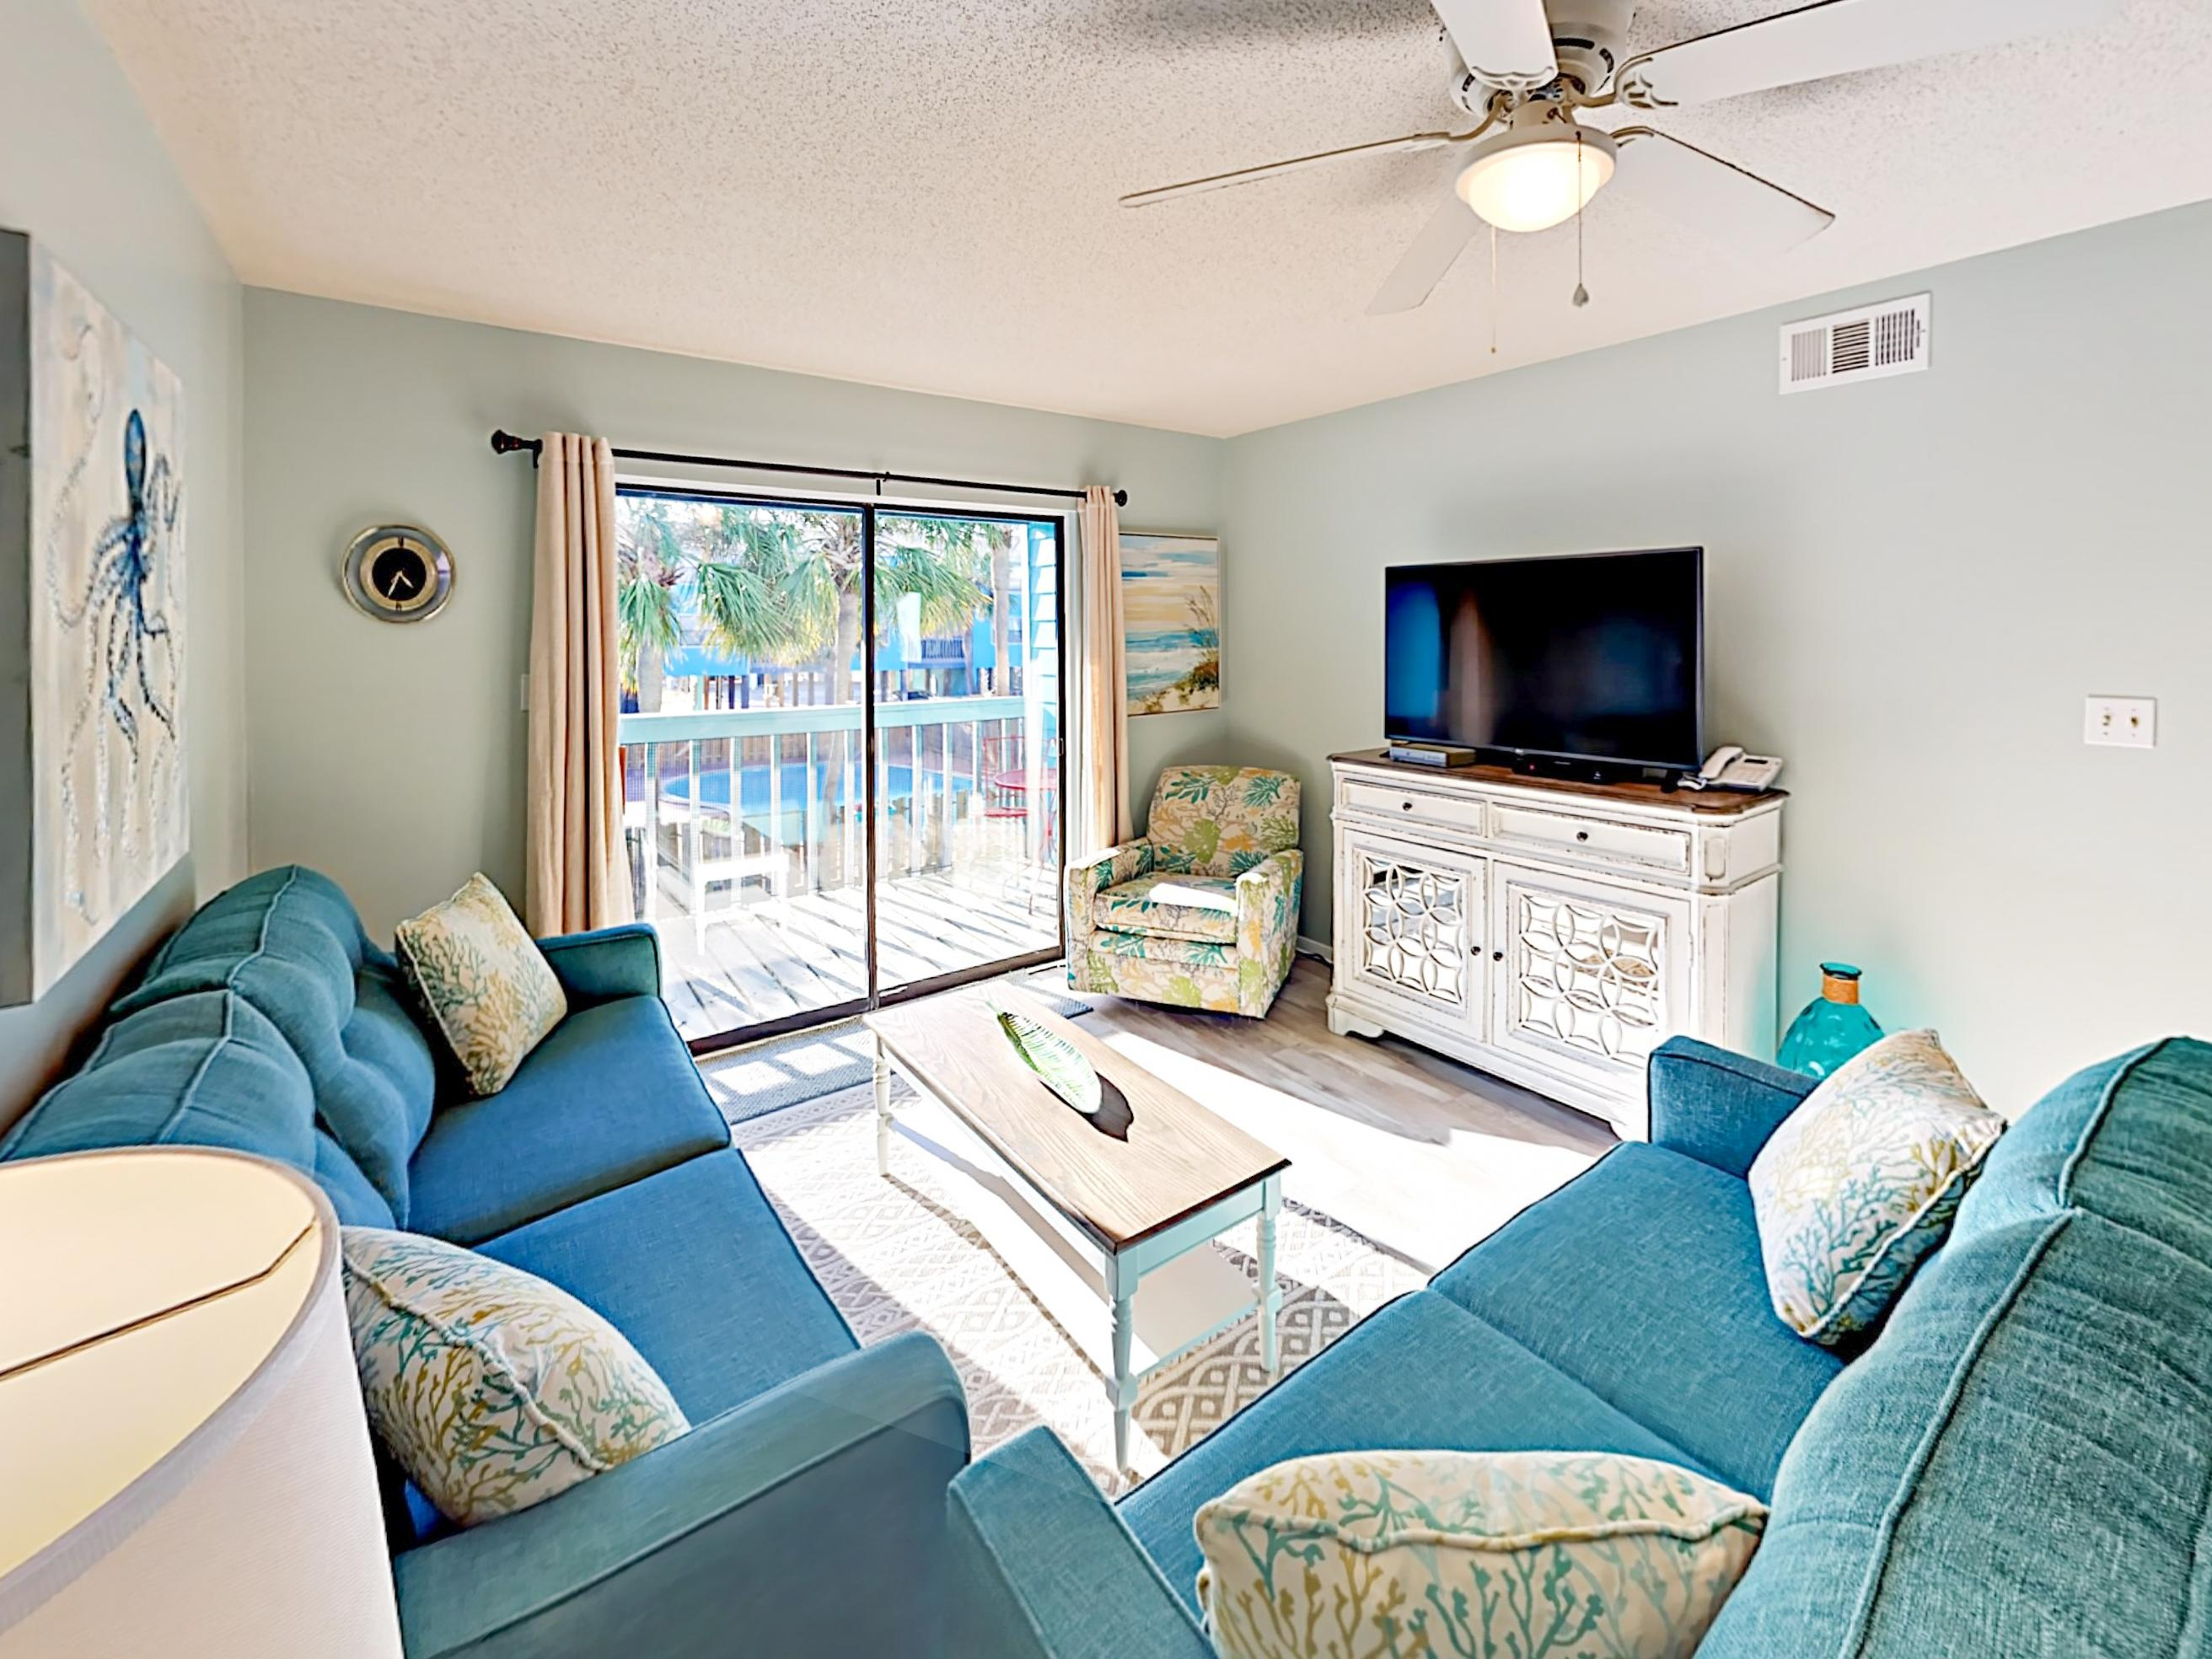 Welcome to Gulf Shores! This home is professionally managed by TurnKey Vacation Rentals.